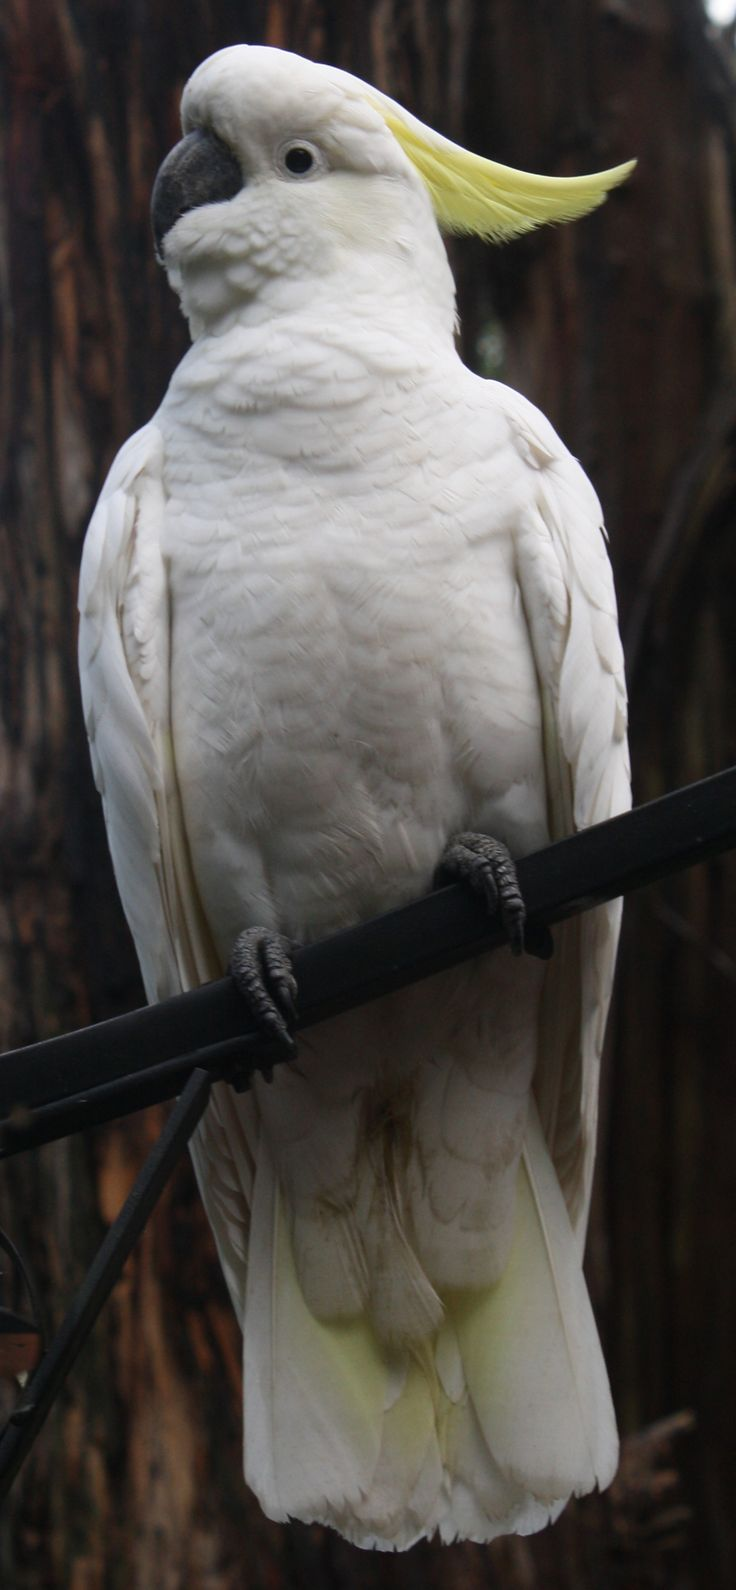 Sulphur-crested Cockatoo (Cacatua galerita) is a relatively large white cockatoo found in wooded habitats in Australia & New Guinea. They can be locally very numerous, leading to them sometimes being considered pests. Cockatoo is any of 21 species belonging to the bird family Cacatuidae, the only family in the superfamily Cacatuoidea. Along with the Psittacoidea (true parrots) and the Strigopoidea (large New Zealand parrots), they make up the order Psittaciformes (parrots).